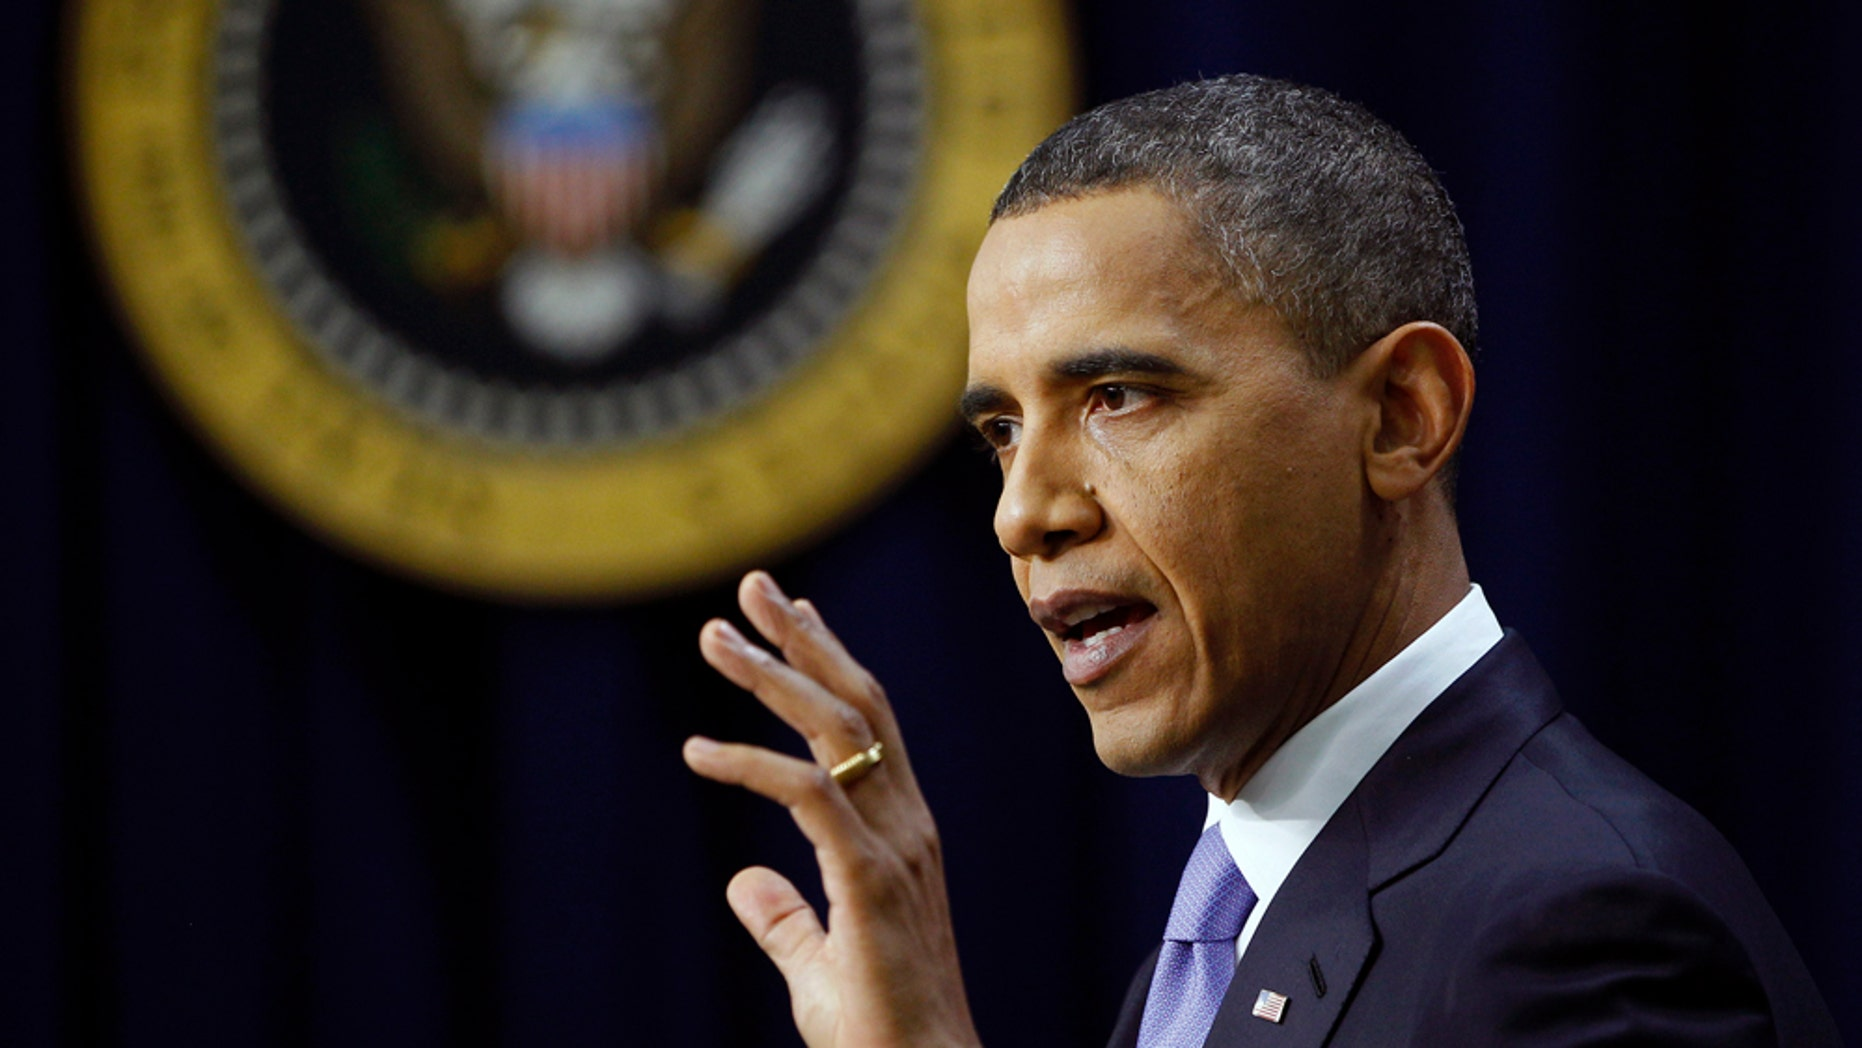 President Barack Obama answers a question during a news conference on the White House complex, Wednesday, Dec. 22, 2010, in Washington. (AP Photo/Evan Vucci)